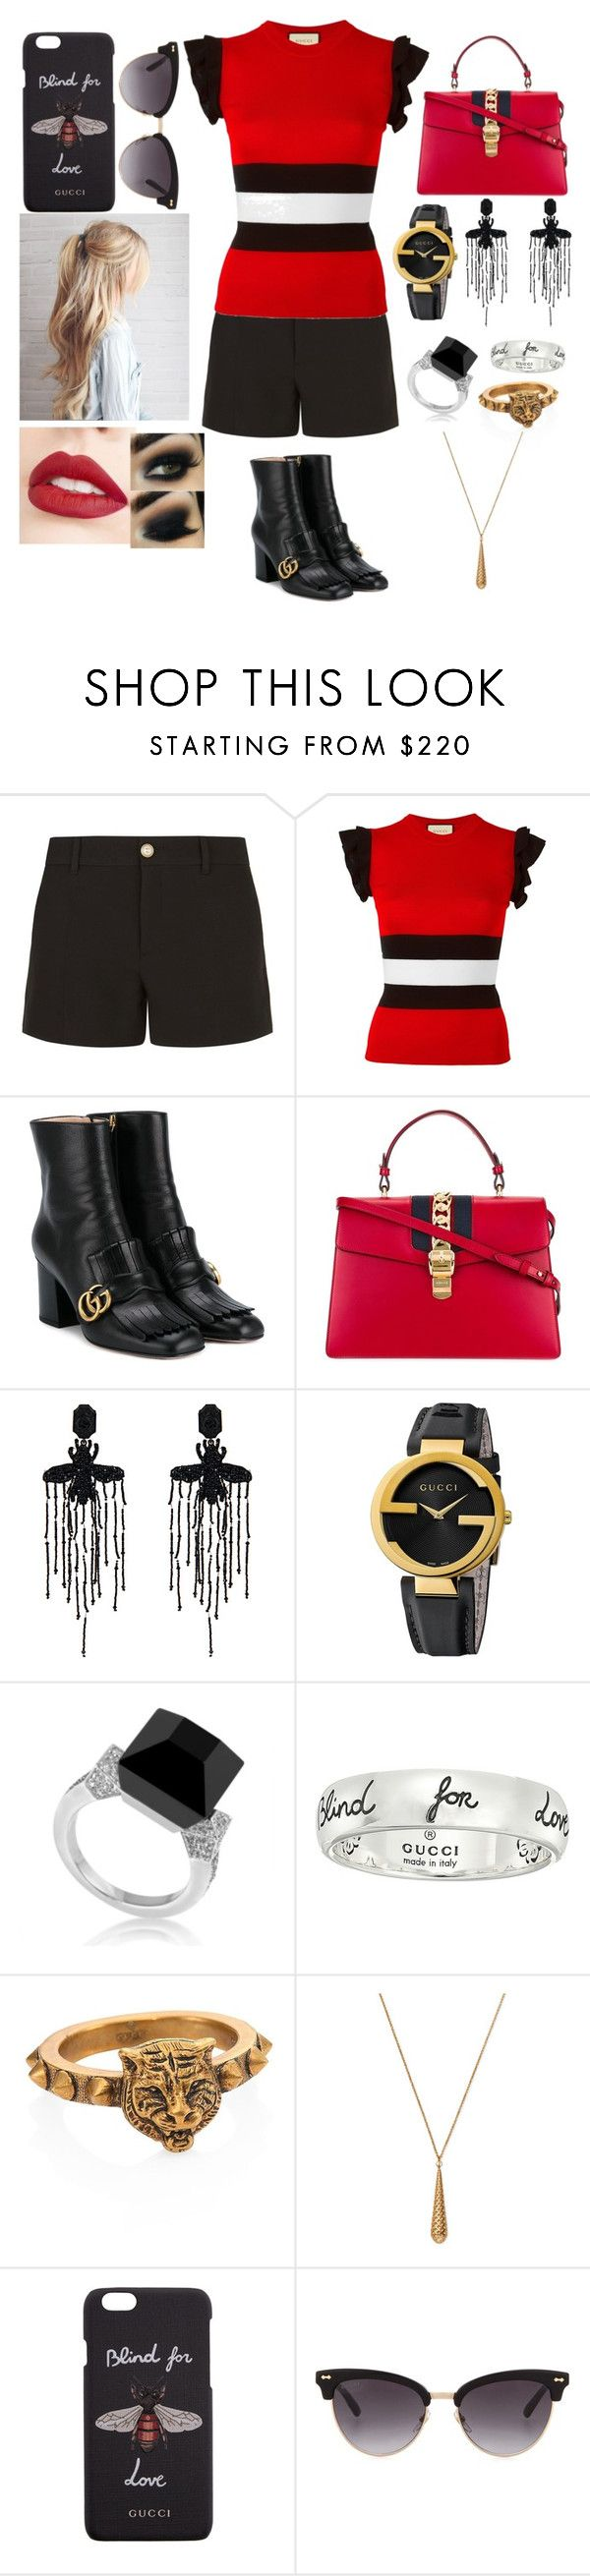 308 best My Polyvore Finds images on Pinterest | White sneakers ...